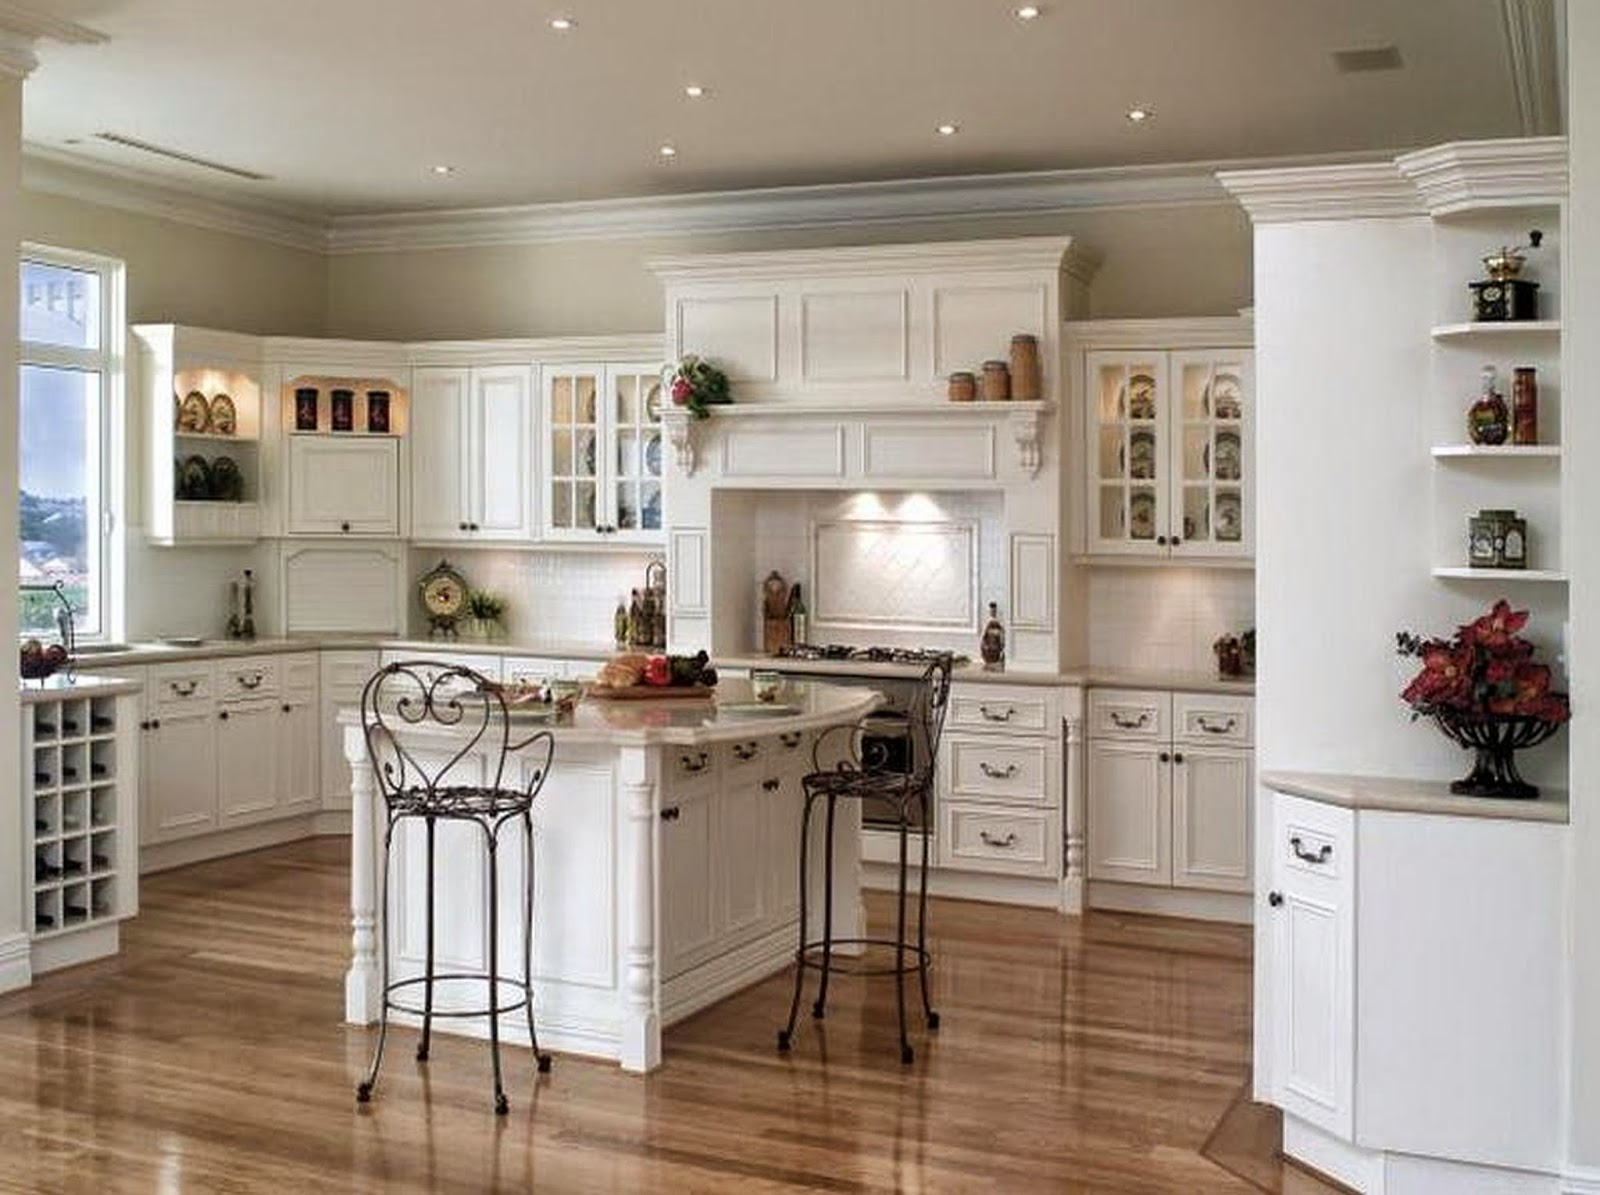 White French Provincial Kitchen Decorating Ideas - Smart ...